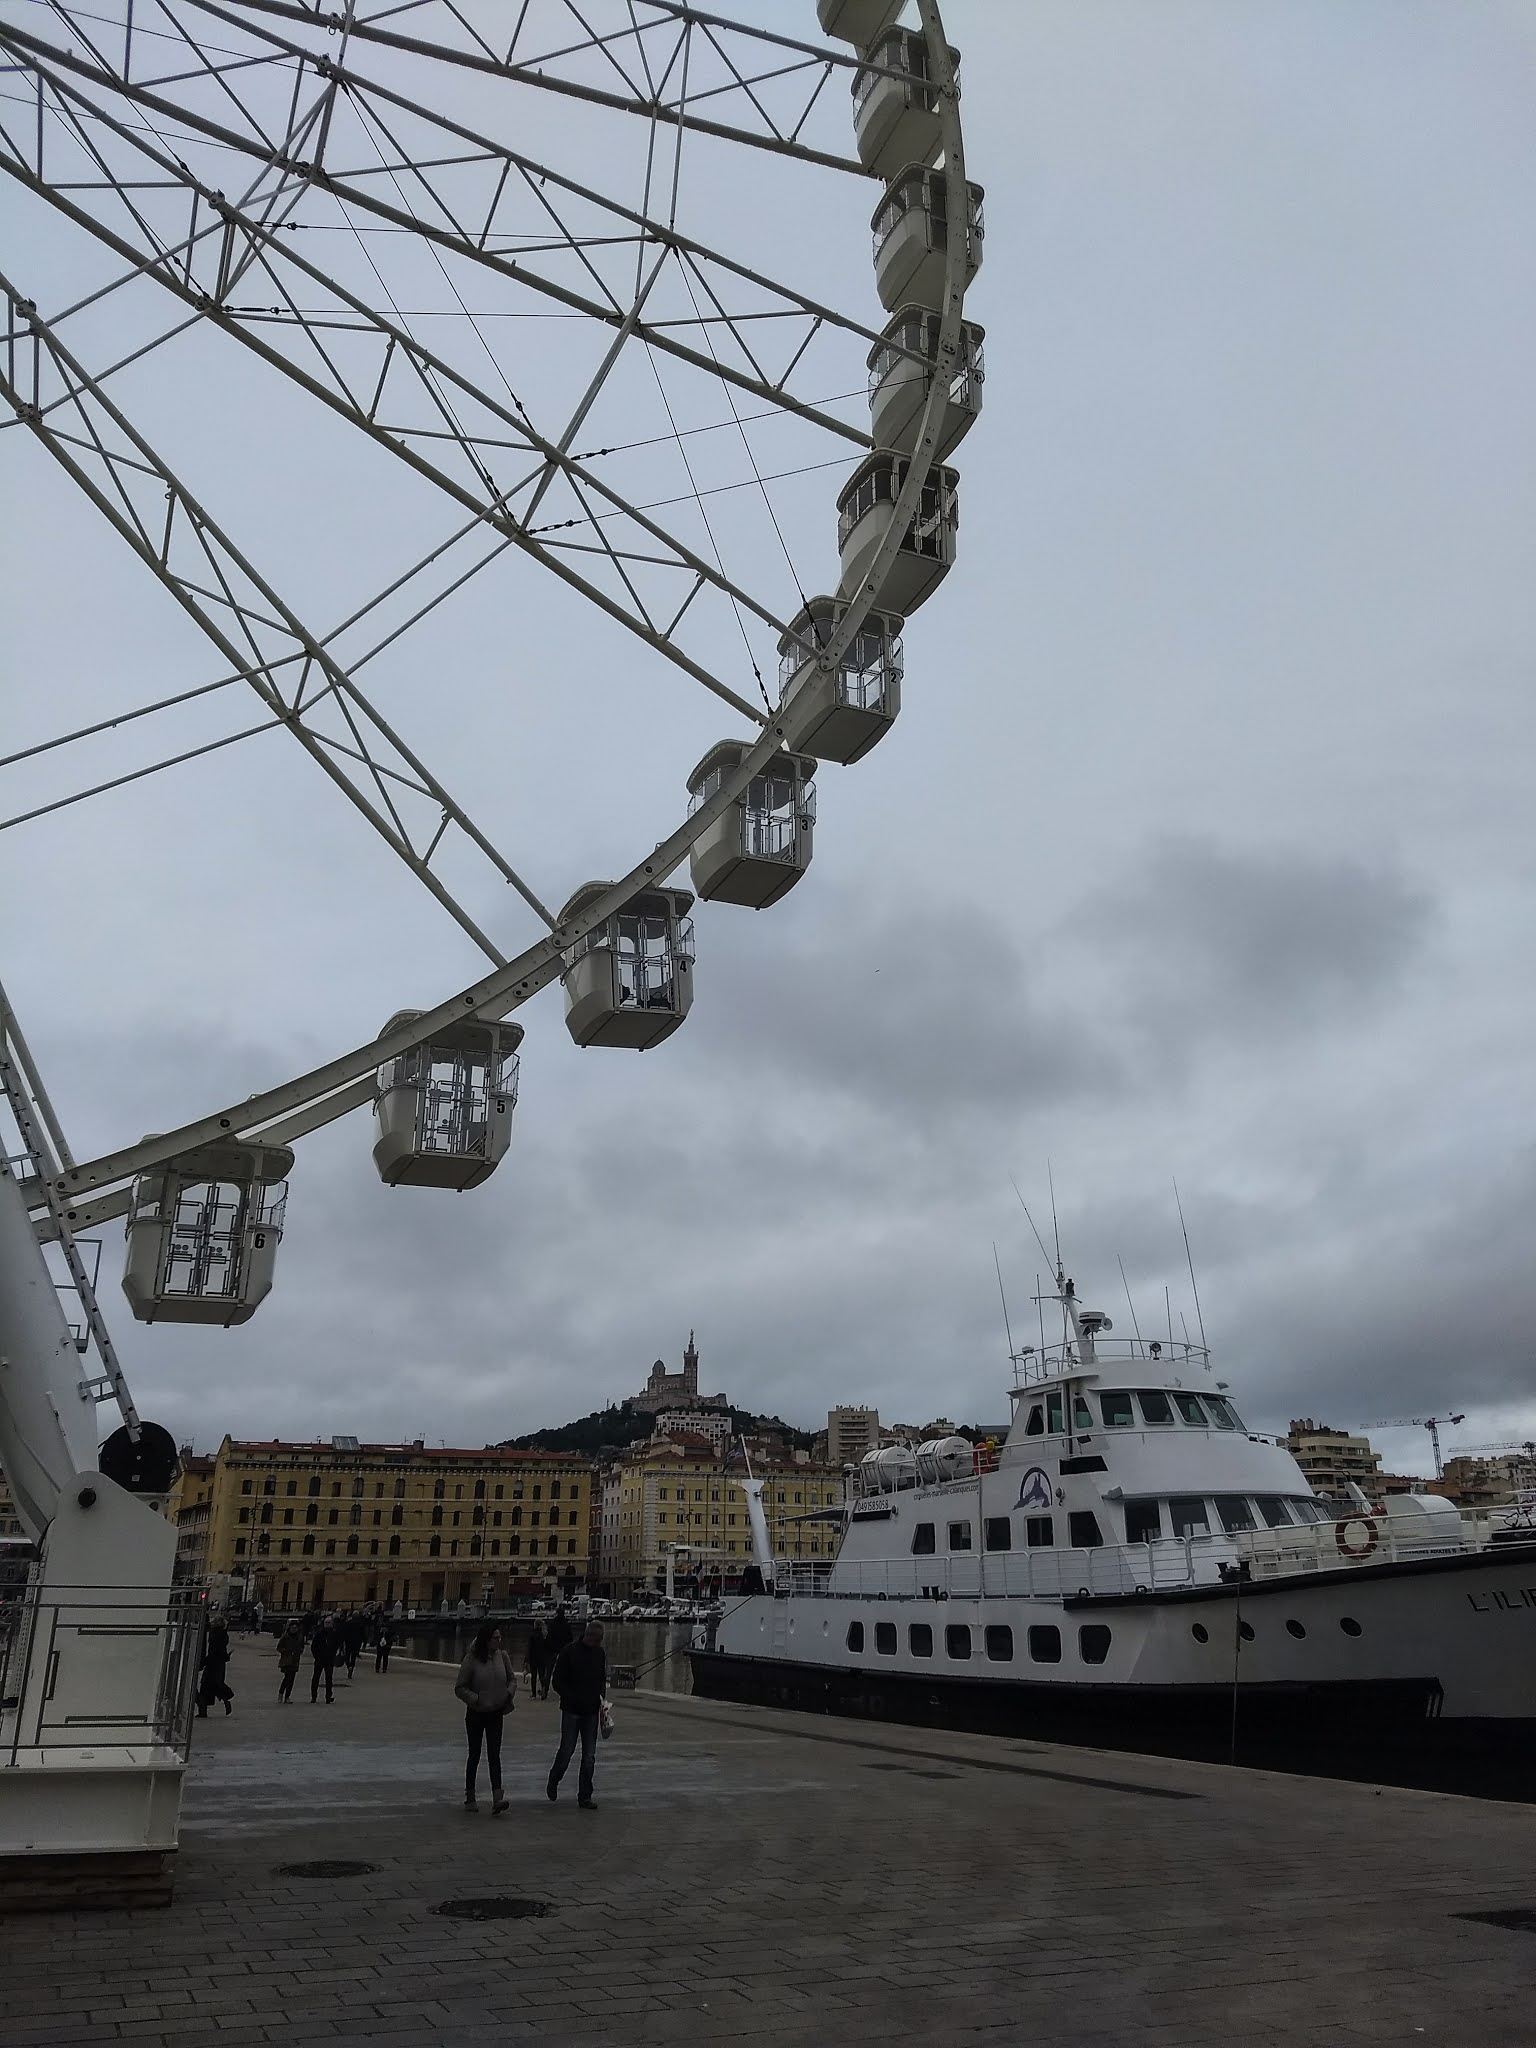 A view of the Big Wheel in the old port of Marseille.